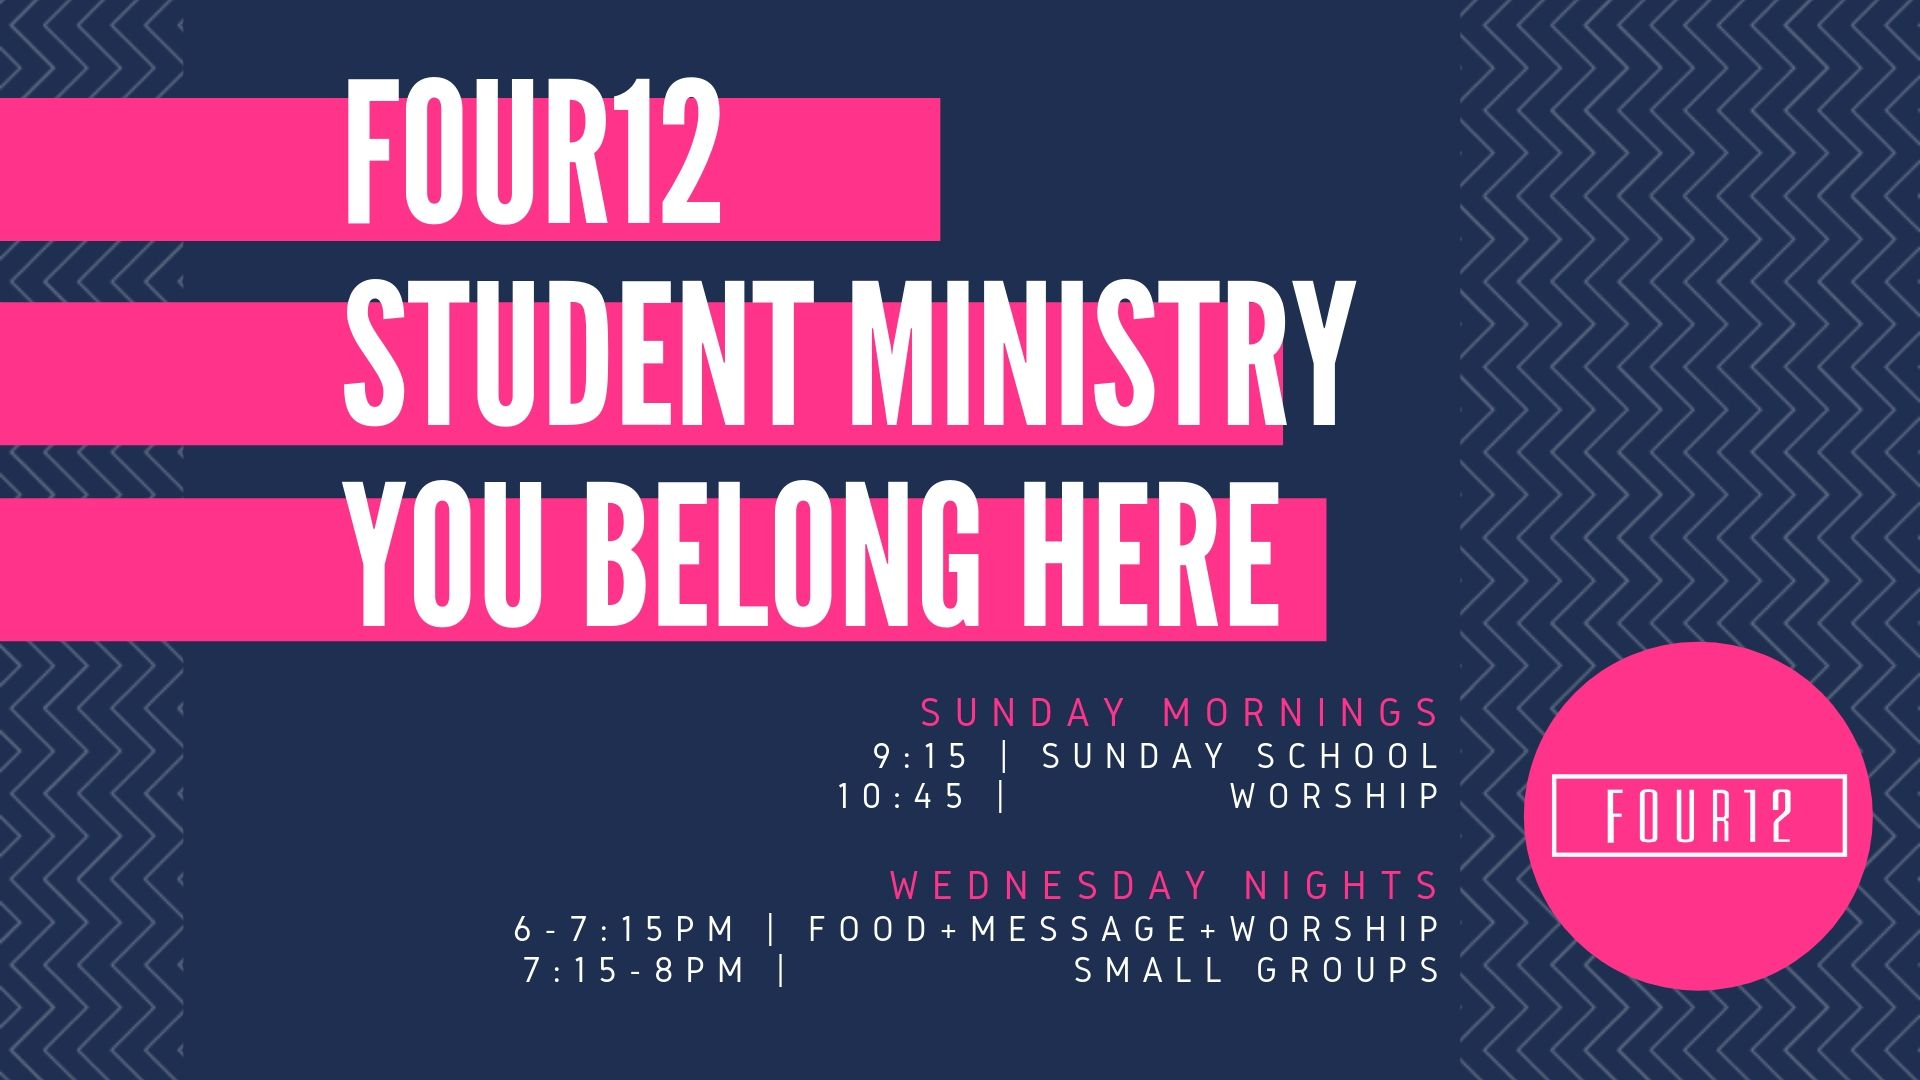 Sunday Morning Youth Schedule - Sunday mornings, 6th-12th grade students are encouraged to connect with each other, with adult leaders, and with Christ through large and small group gatherings. The time of fun, fellowship, study, and worship is intentionally designed to be a single 2 hour program in order for youth to receive the benefits of both large group worship + small group time.9:15-10:15 Hour - Sunday School for all grades 6-12thThe Path - Jr Hi | C230Confirmation - Jr Hi | C232-234The Take - Jr Hi | C236Area 51 - Sr Hi | C250_______________________________________10:45-11:45 Hour - Worship for all grades 6-12th gradesIn the Youth Room